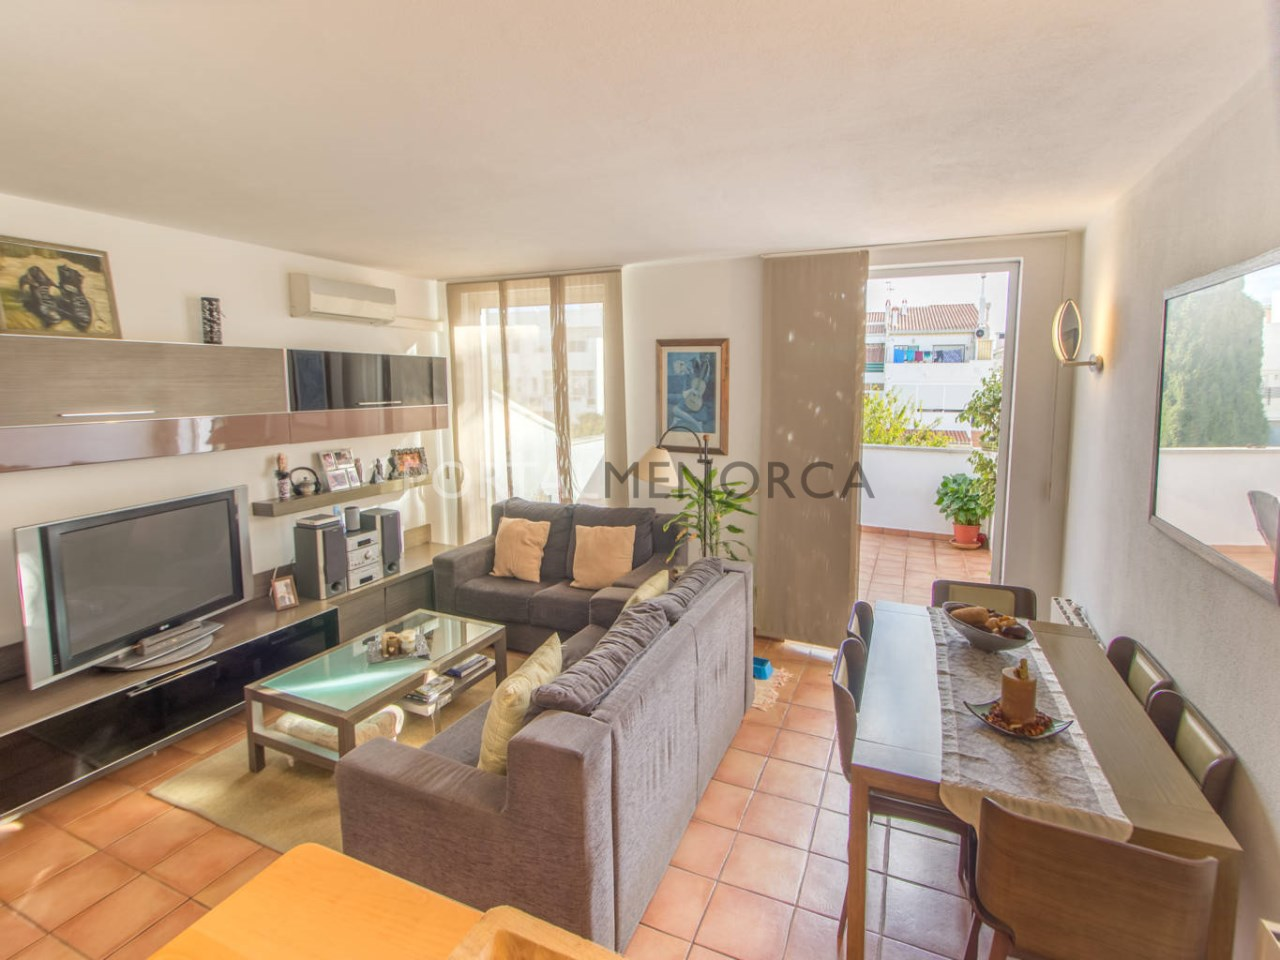 Duplex with terrace for sale in Menorca